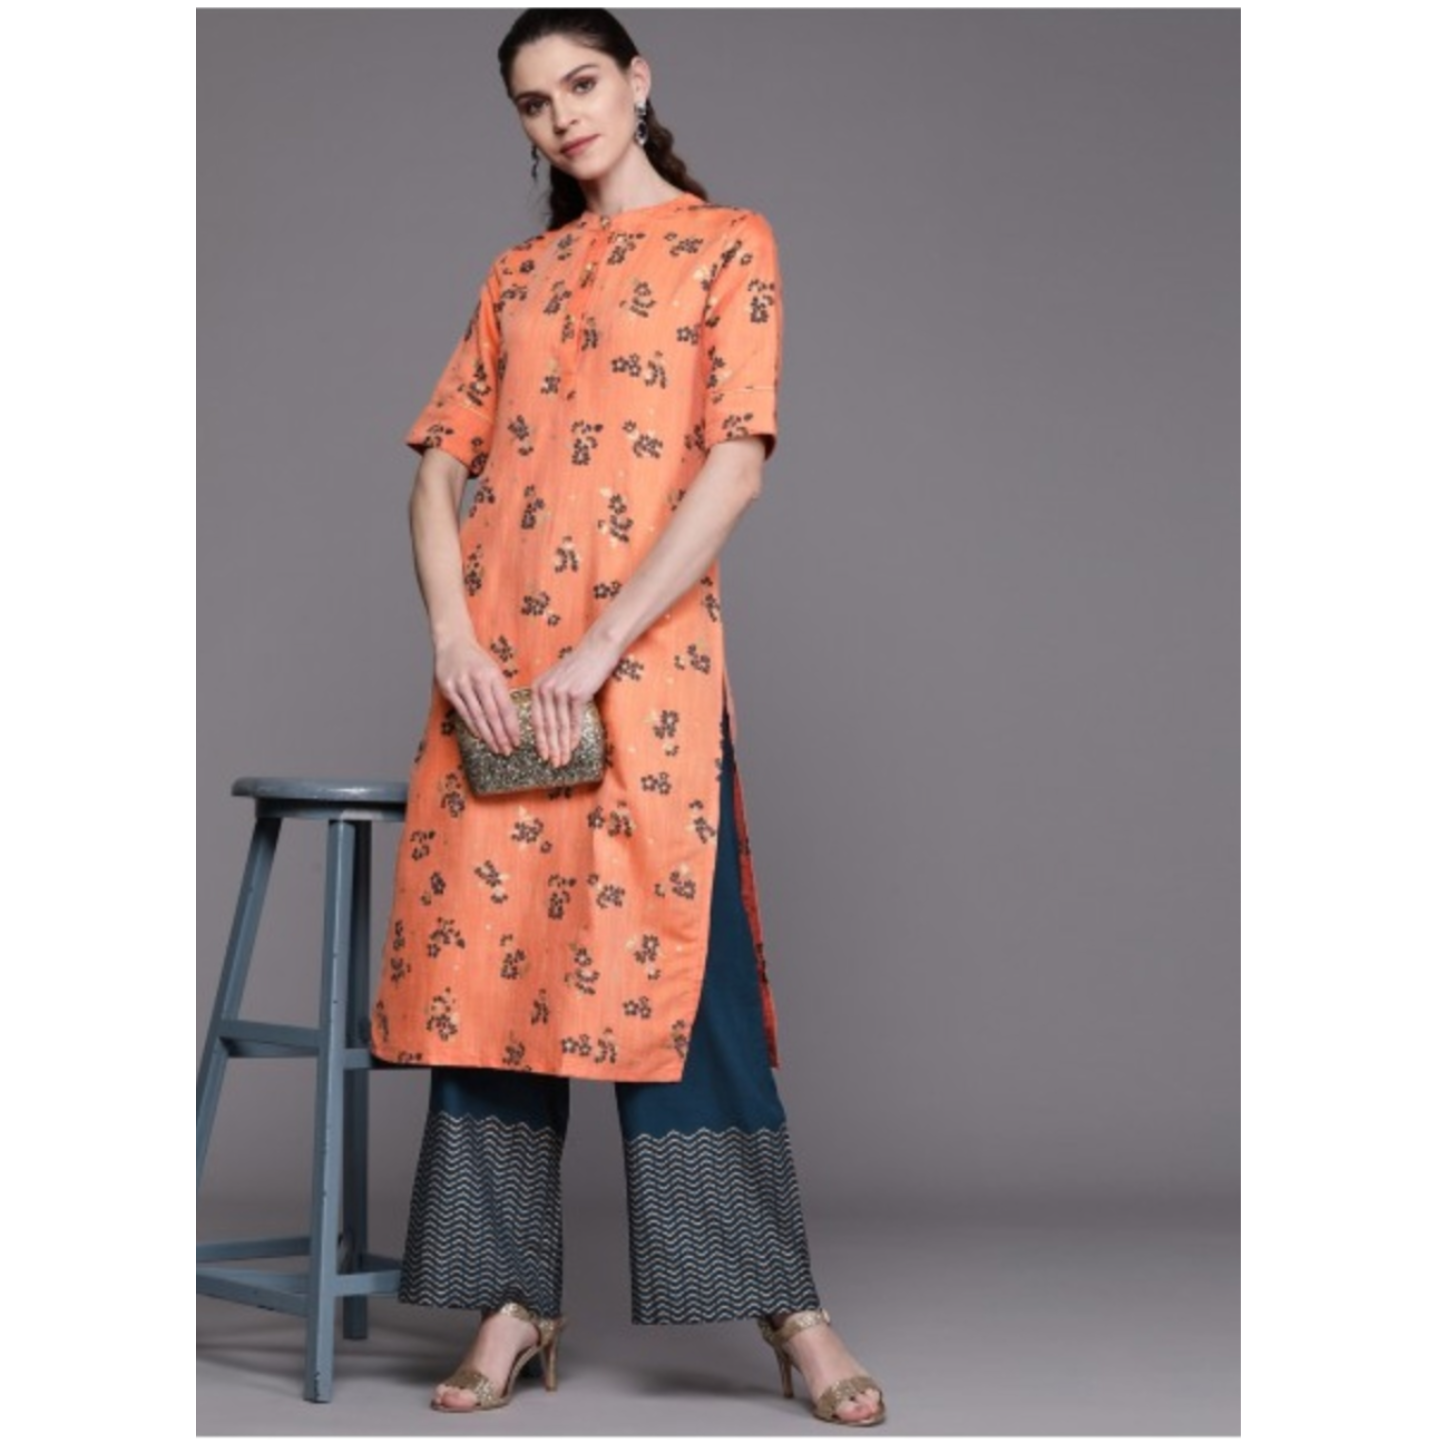 Peach-Coloured & Teal Blue Floral Print Kurta With Palazzos